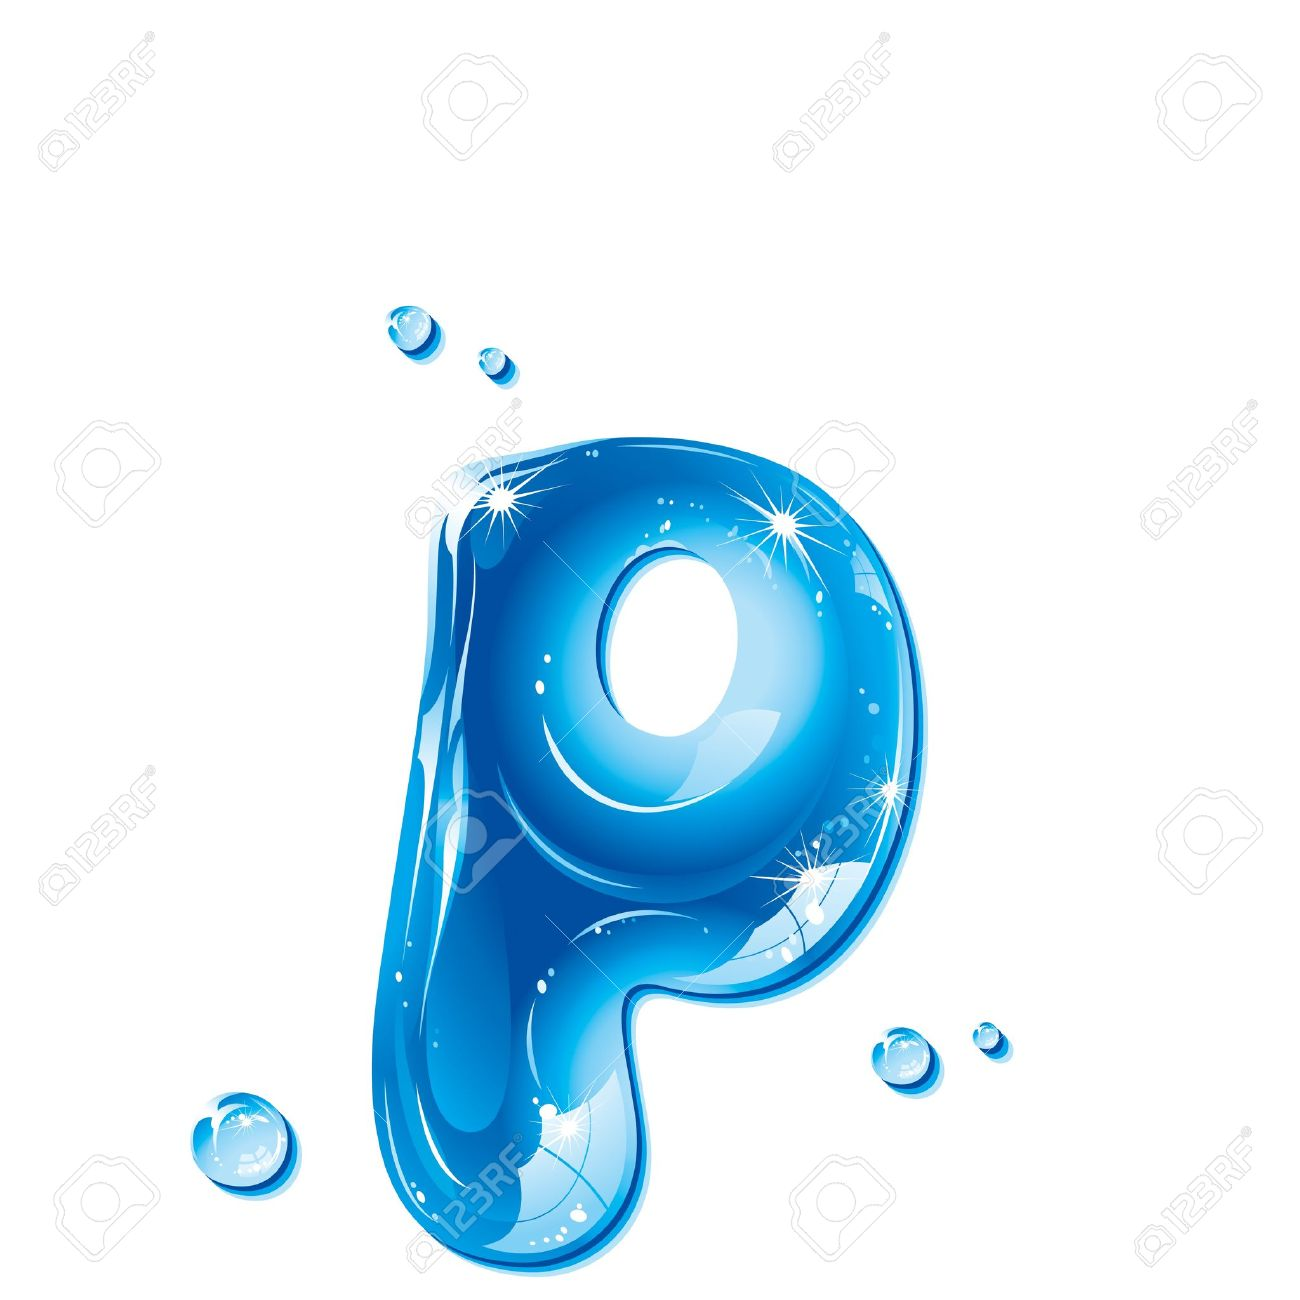 Free clipart water letters picture freeuse download ABC Series - Water Liquid Letter - Small Letter P Royalty Free ... picture freeuse download